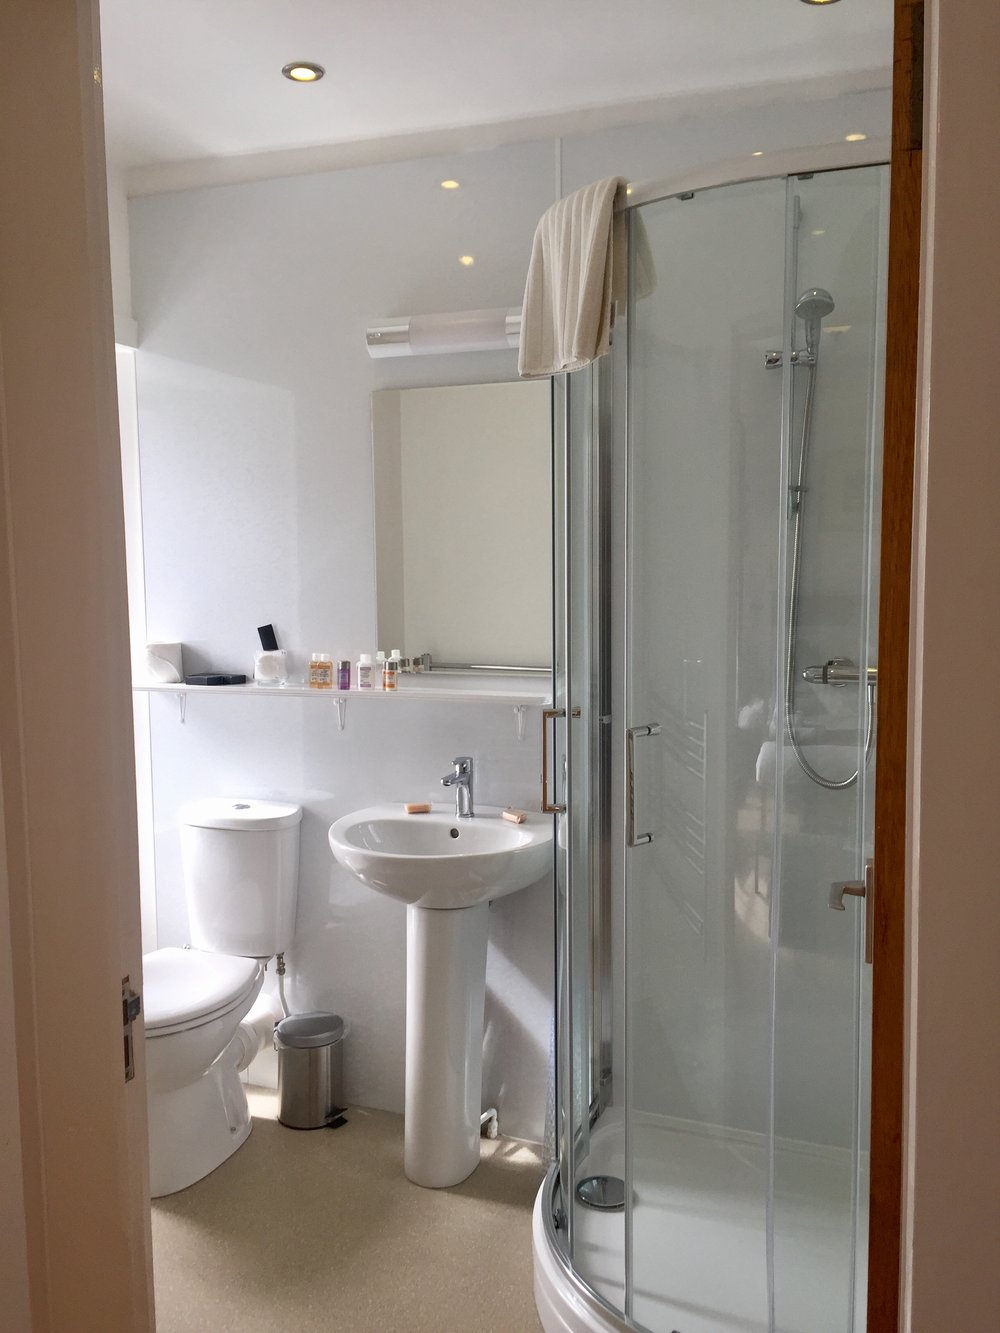 Sea view ensuite shower room